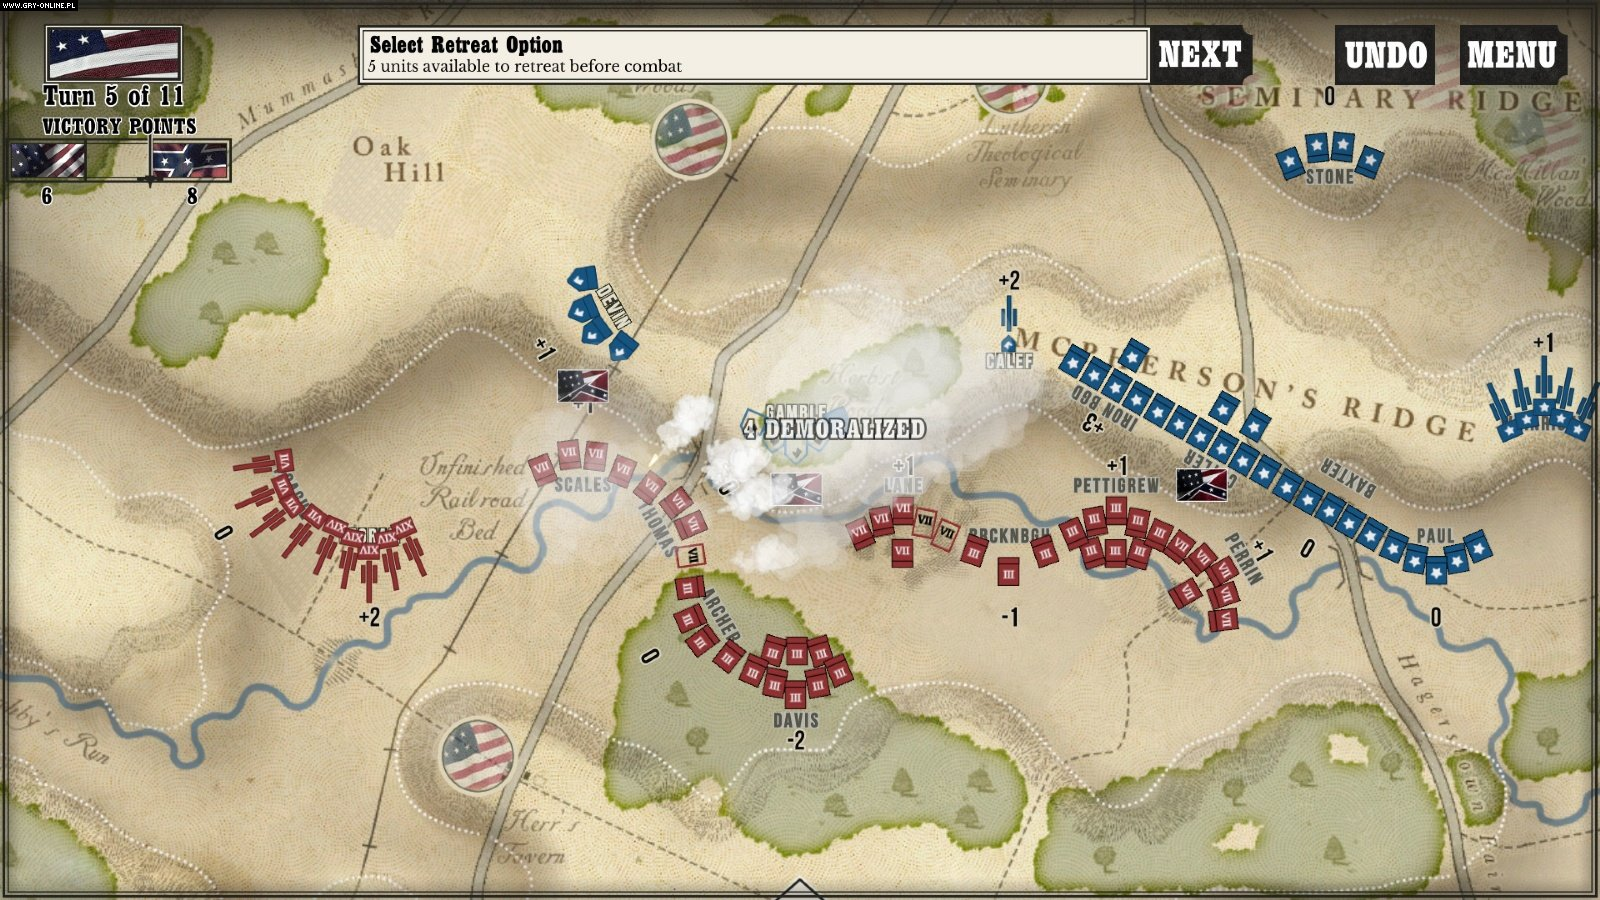 Gettysburg: The Tide Turns PC, iOS Games Image 4/4, Shenandoah Studio, Matrix Games/Slitherine